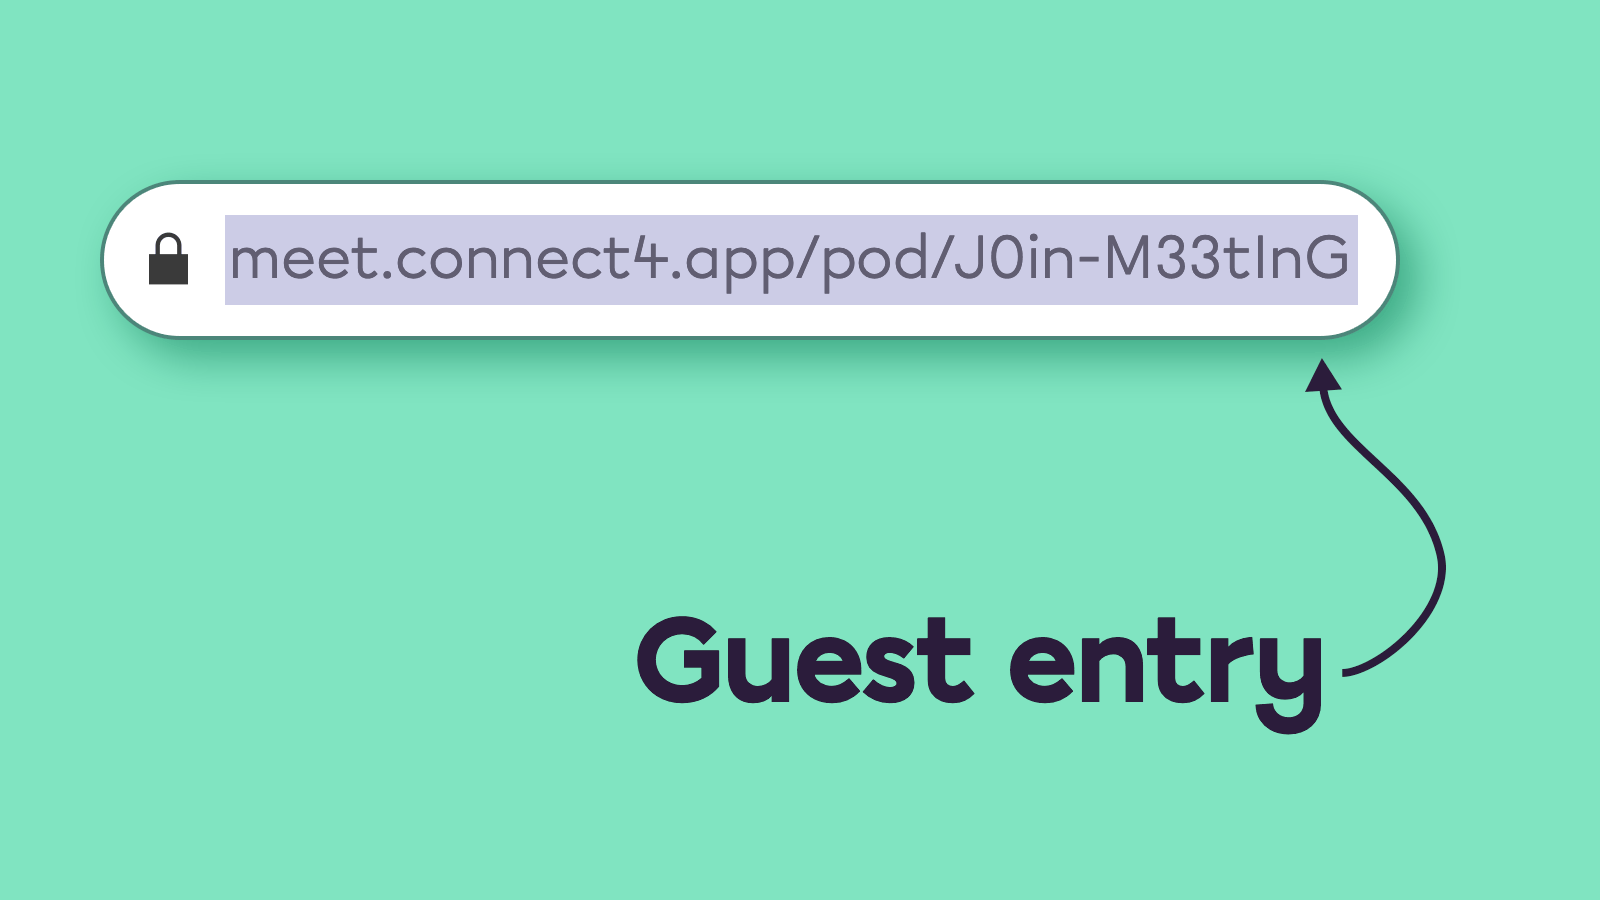 Guest entry